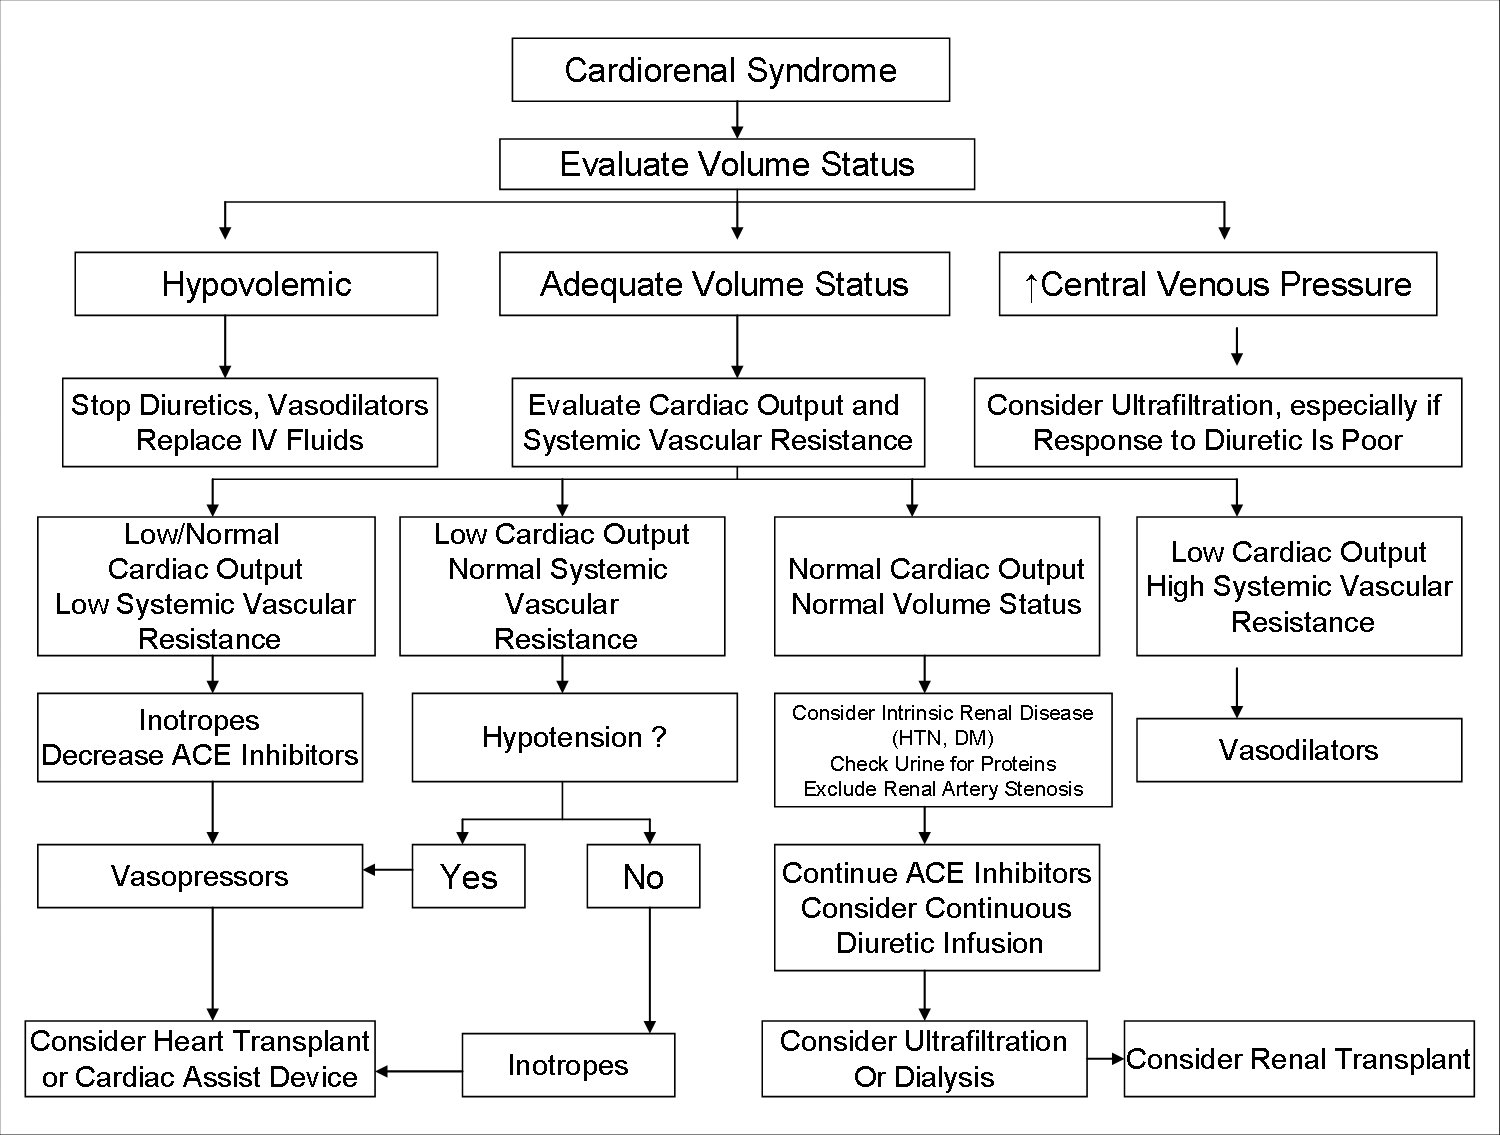 Cardiorenal syndrome in heart failure patients - The